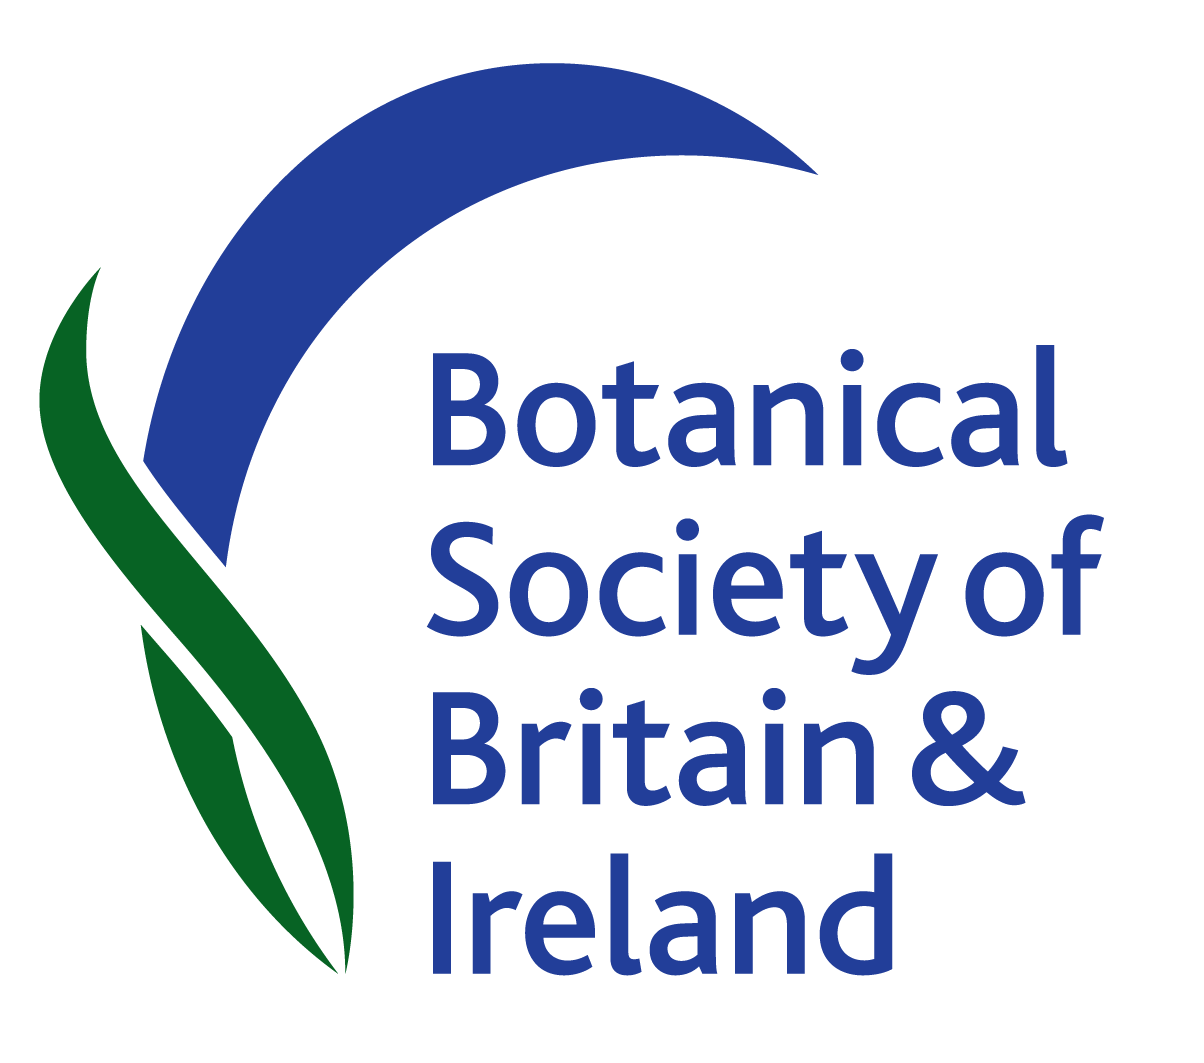 Botanical Society of Britain & Ireland logo